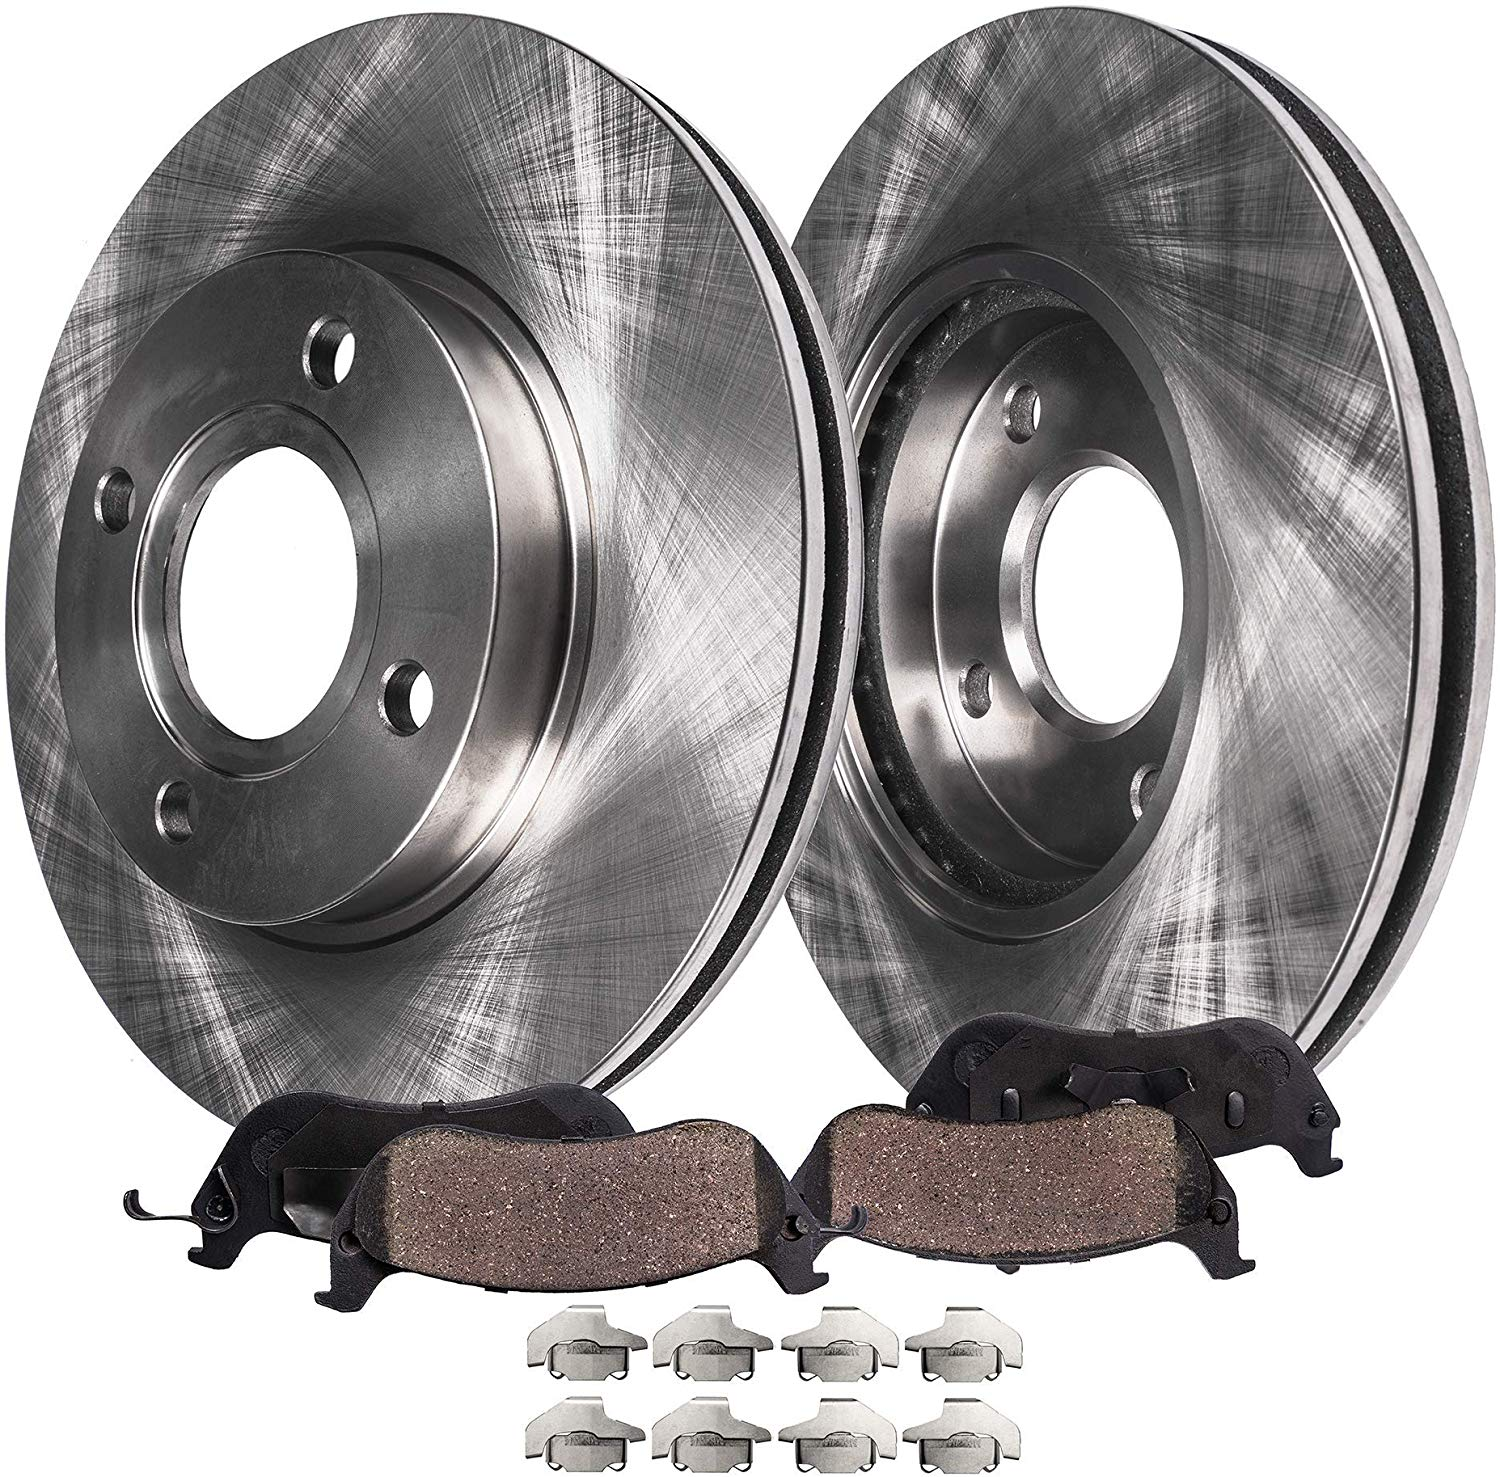 2007 2008 for Pontiac G5 Front Brake Rotors and Pads Rear Drums Shoes 4Lug